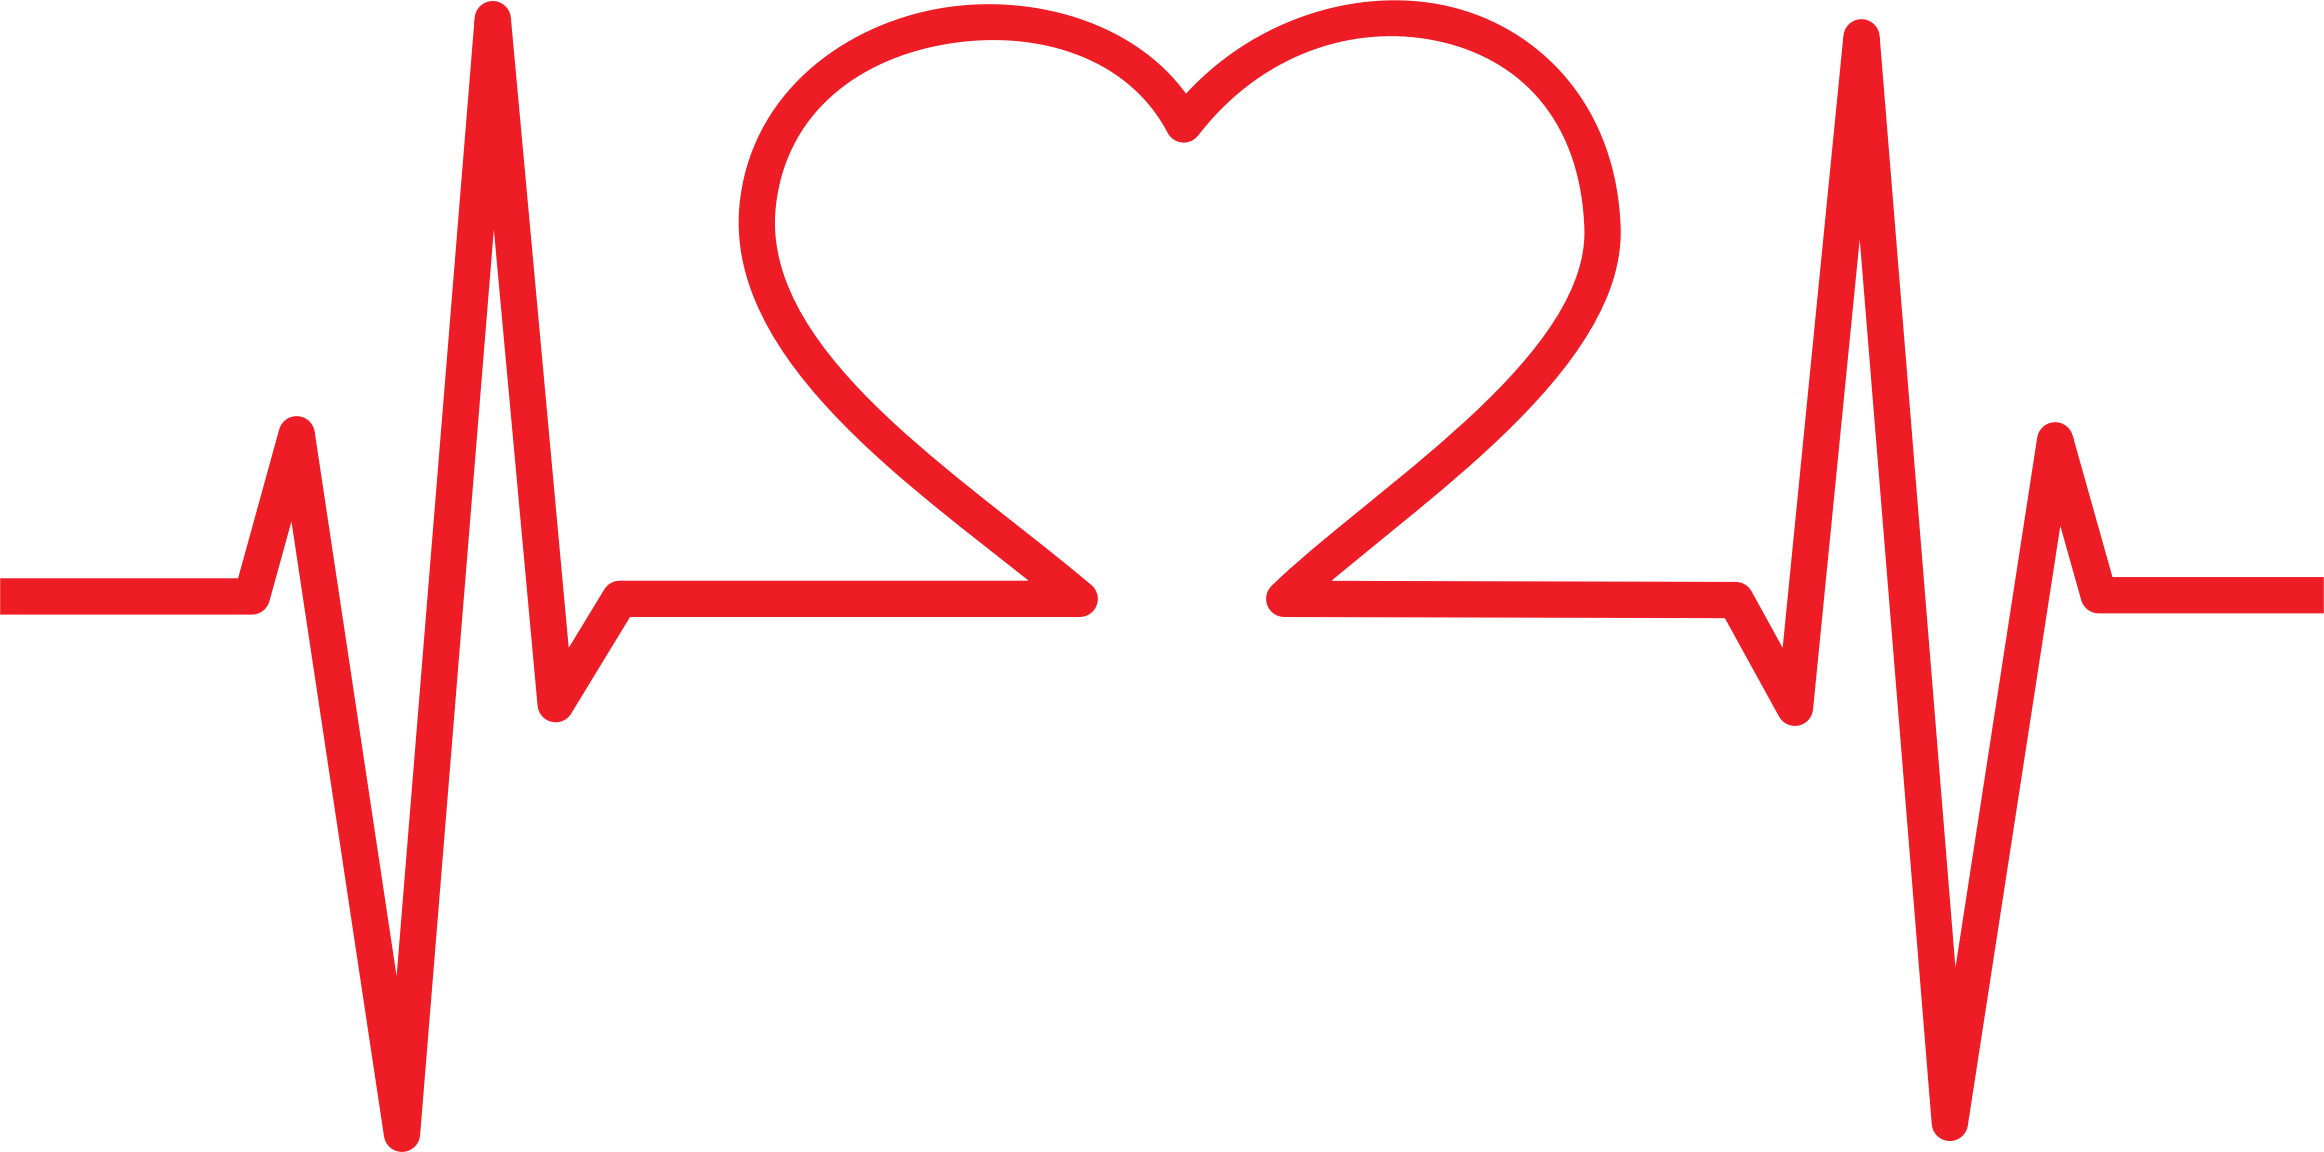 ekg svg heart shaped